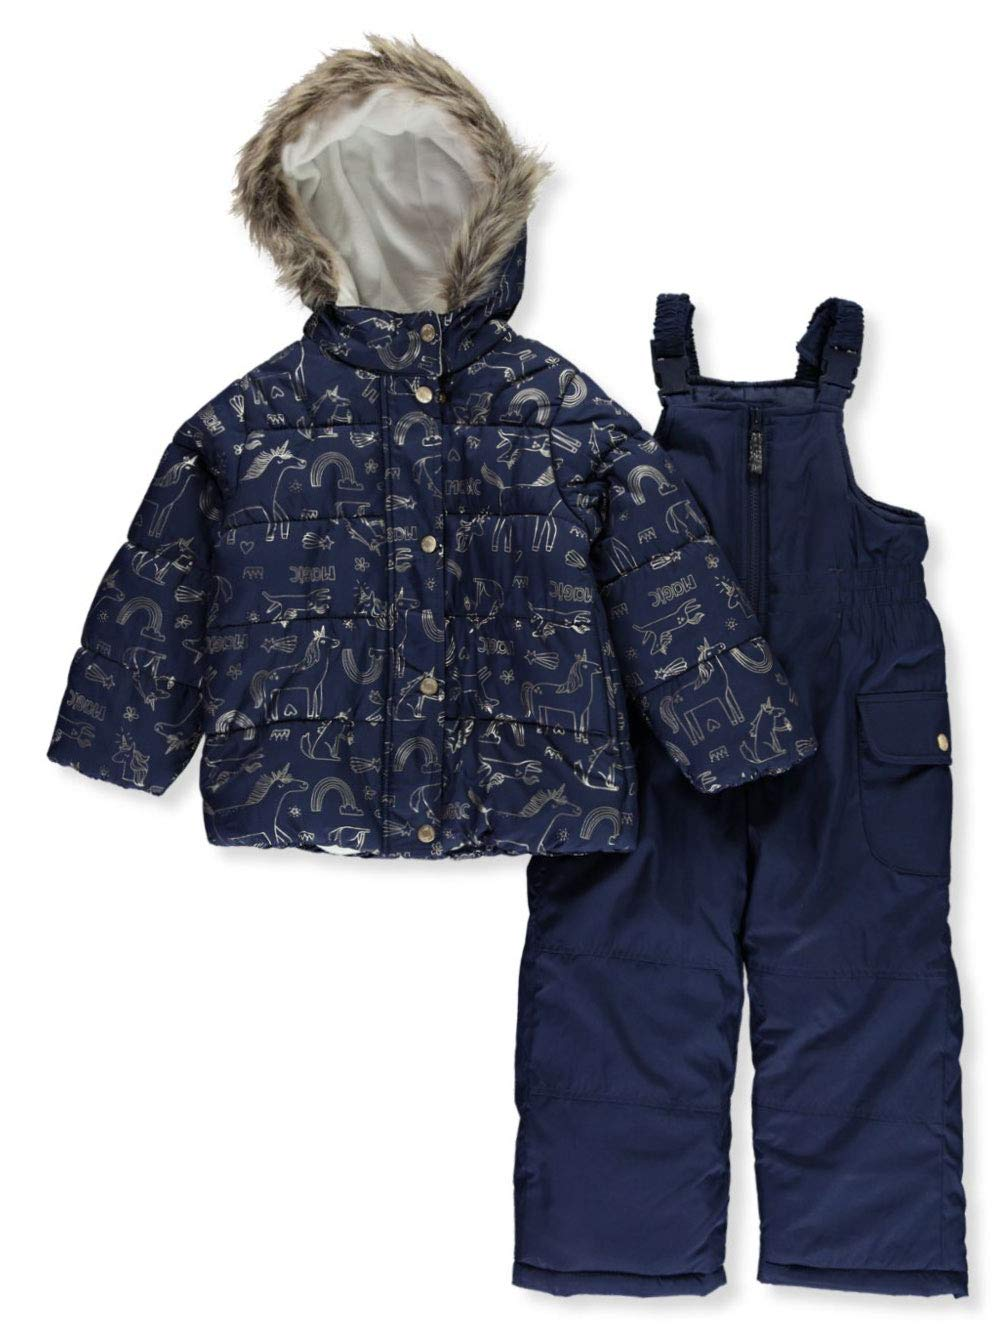 Carter's Girls' Little Heavyweight 2-Piece Skisuit Snowsuit, Navy Unicorn Print, 5/6 by Carter's